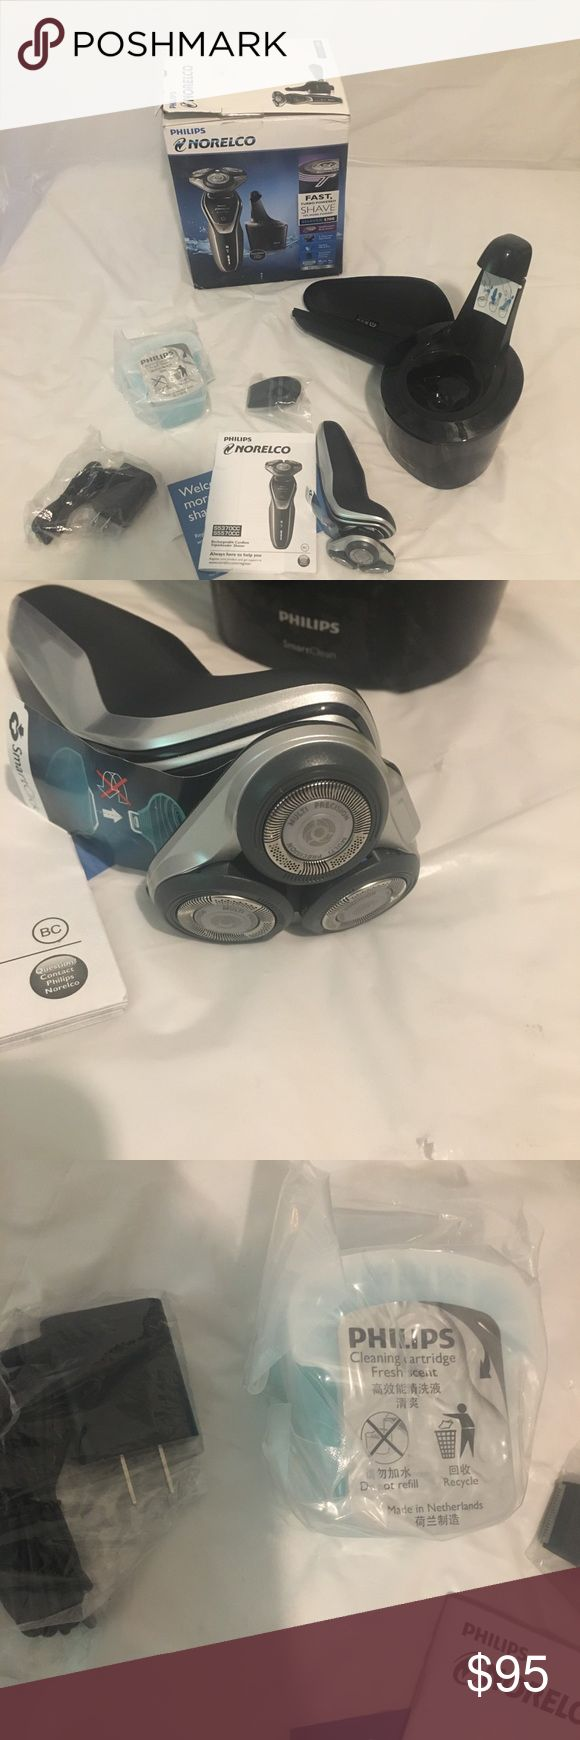 NEW philips norelco mens shaver My husband & I own an online women's boutique & a small liquidation company so make sure to check out our other listings!!  Item is in new unused condition in an open box. All pieces are included. Please note Box may show signs of damage due to Shipping, storage, and retailer stickers being removed. Accessories